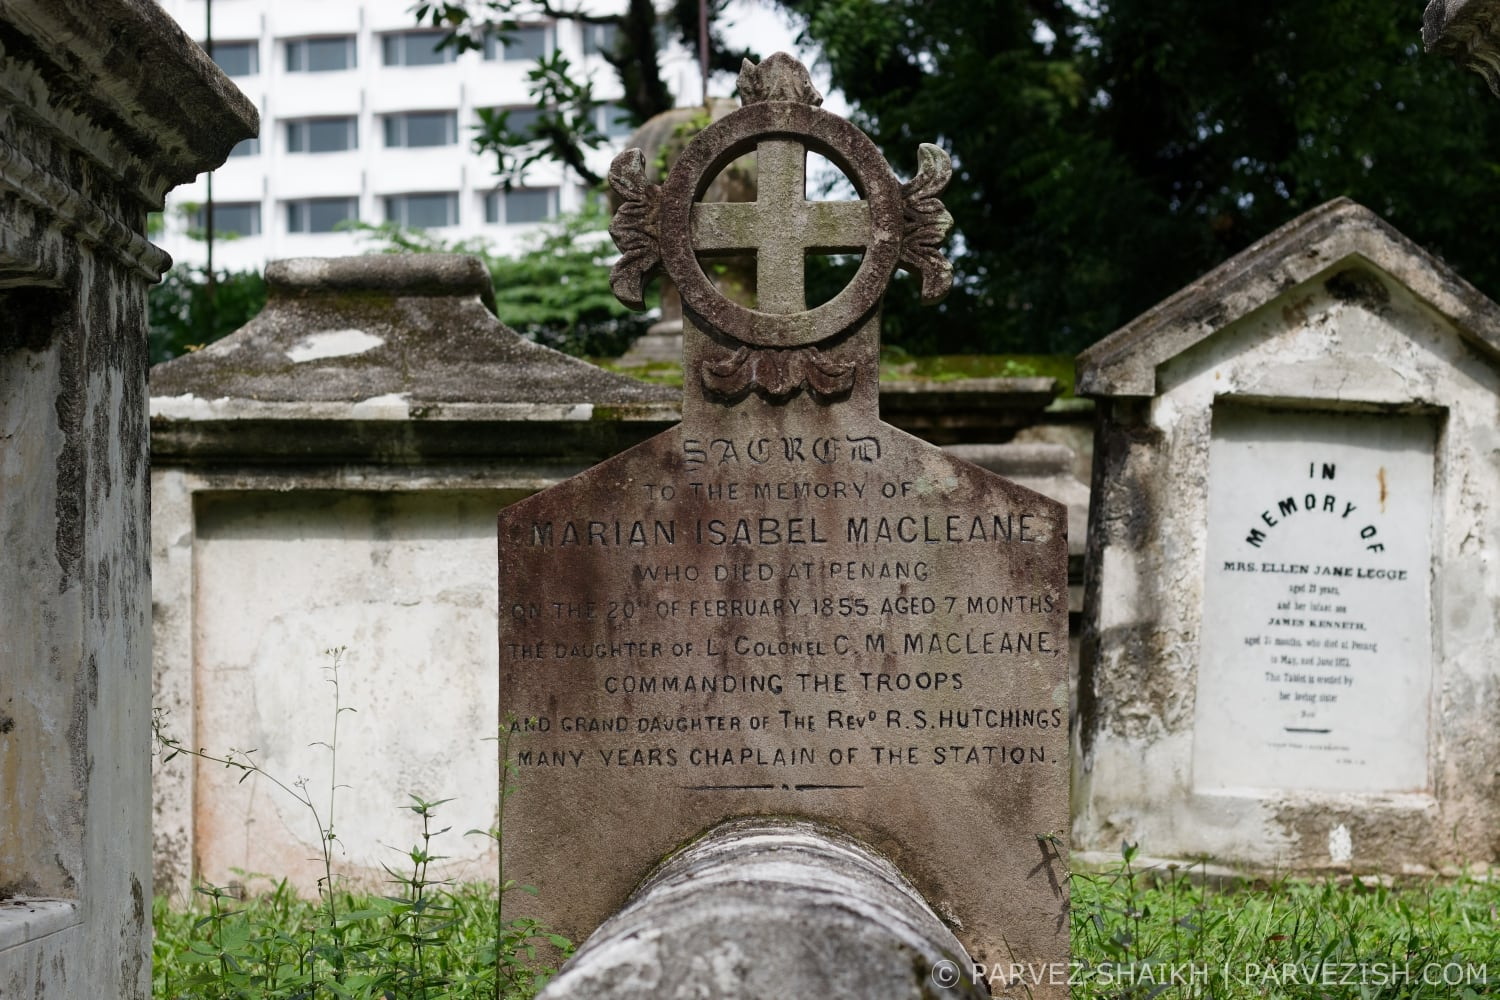 The Grave of Marian Isabel Macleane at the Old Protestant Cemetery